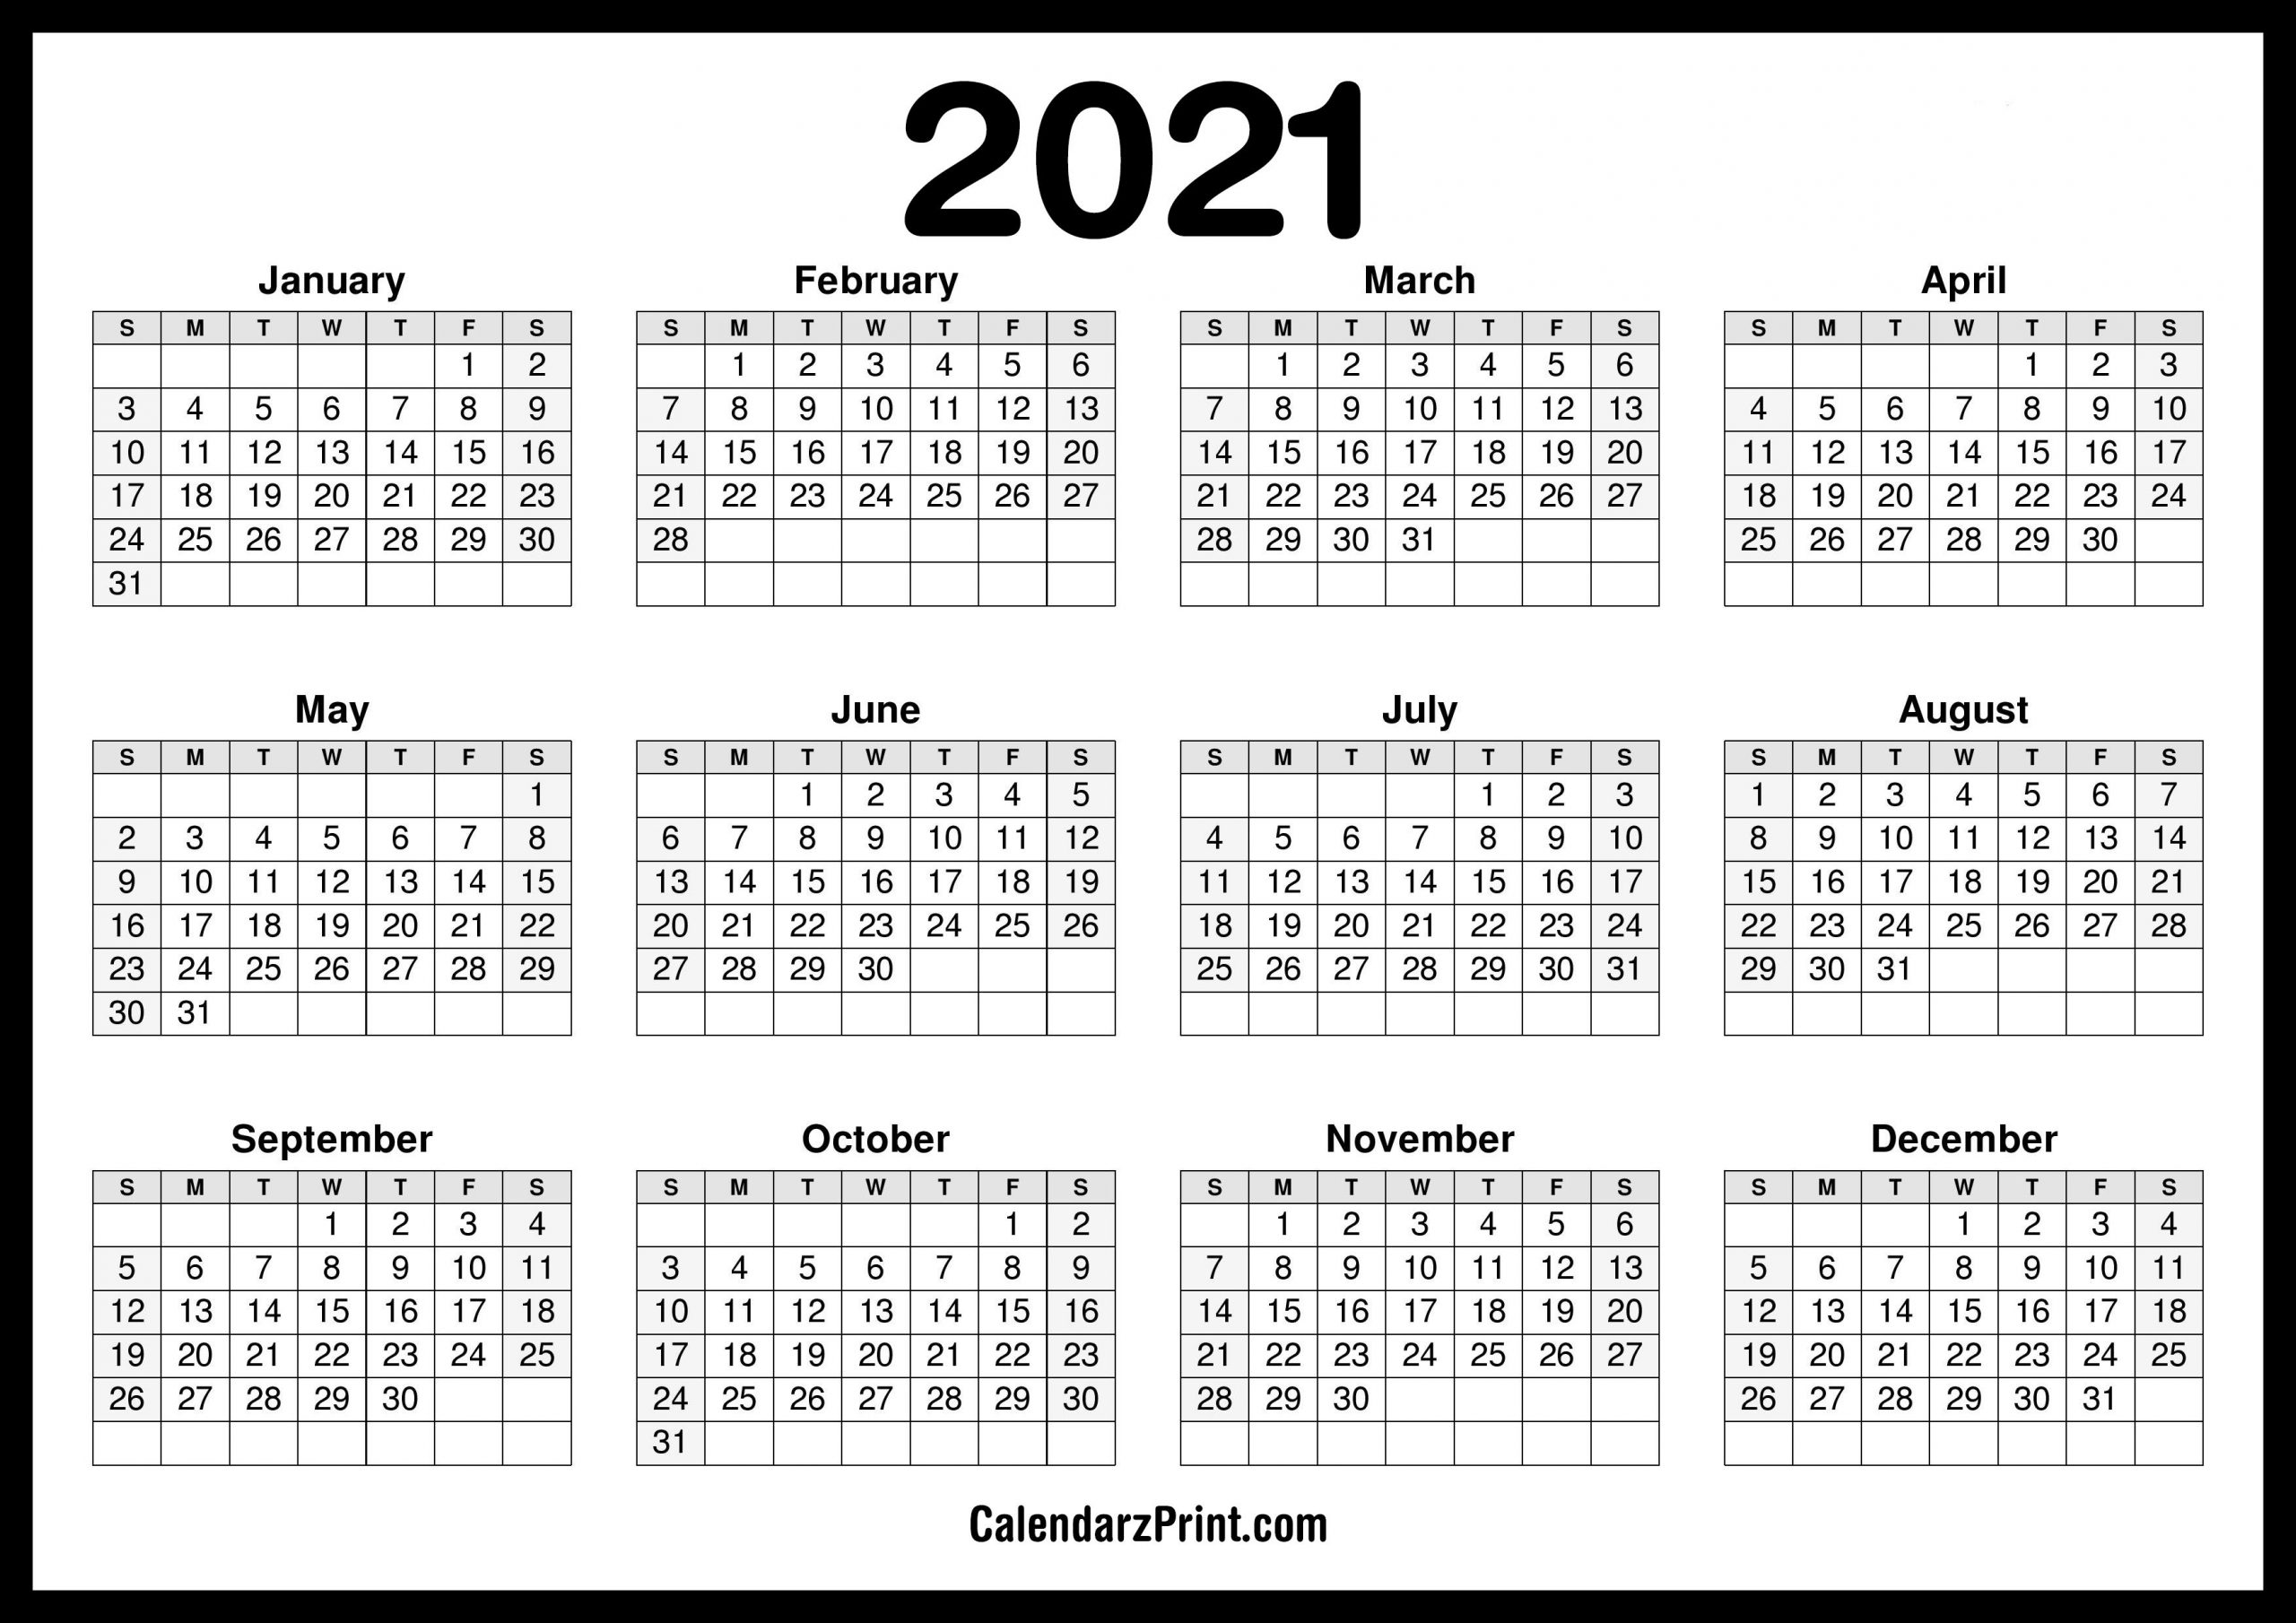 2021 Calendar Printable Free, Horizontal, Hd, Black